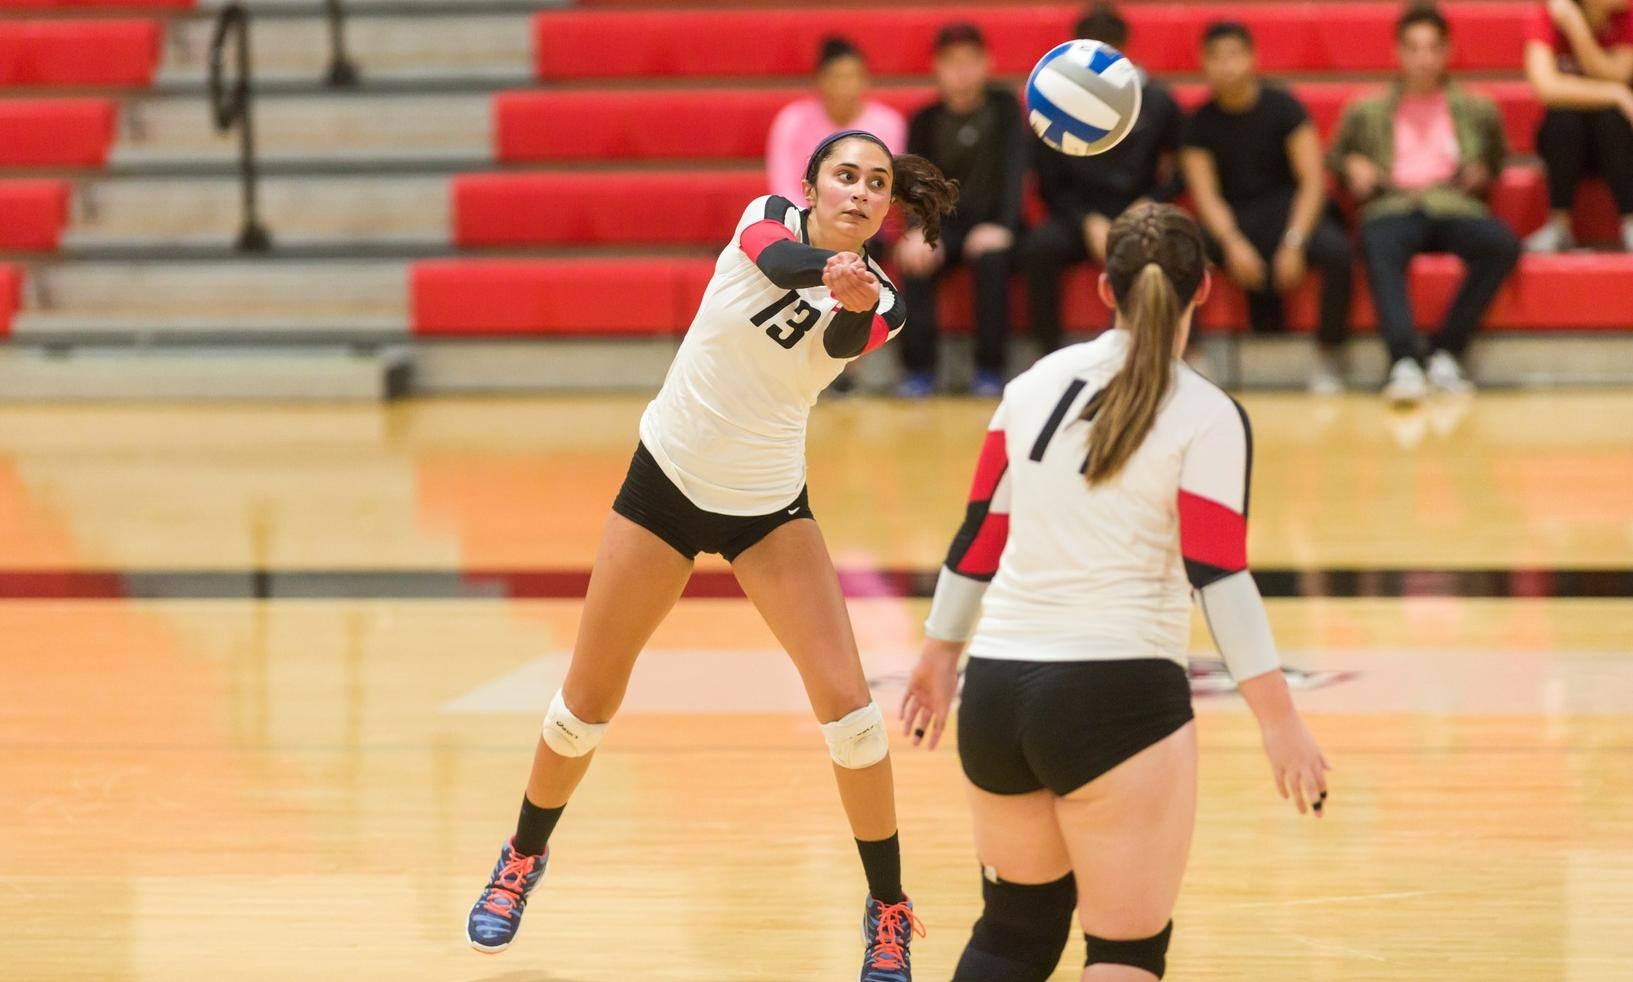 Ramos Lifts Cougars to Victory Over Emerson, 3-0